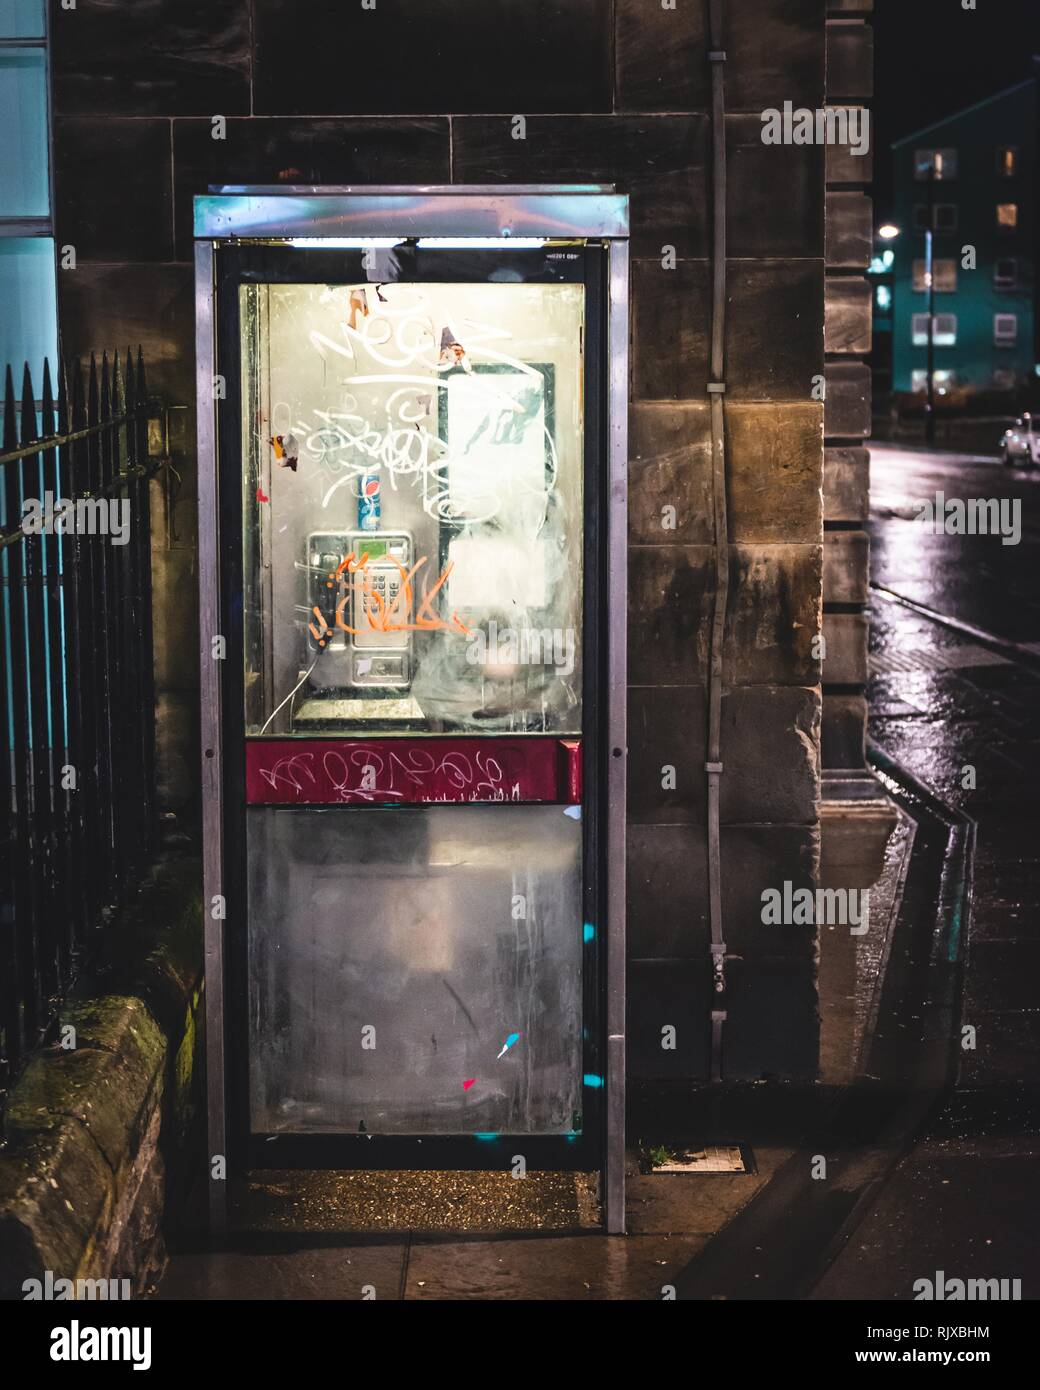 An old run down vandalised public telephone box lit up in the night on the corner of the street in Edinburgh, Scotland - Stock Image